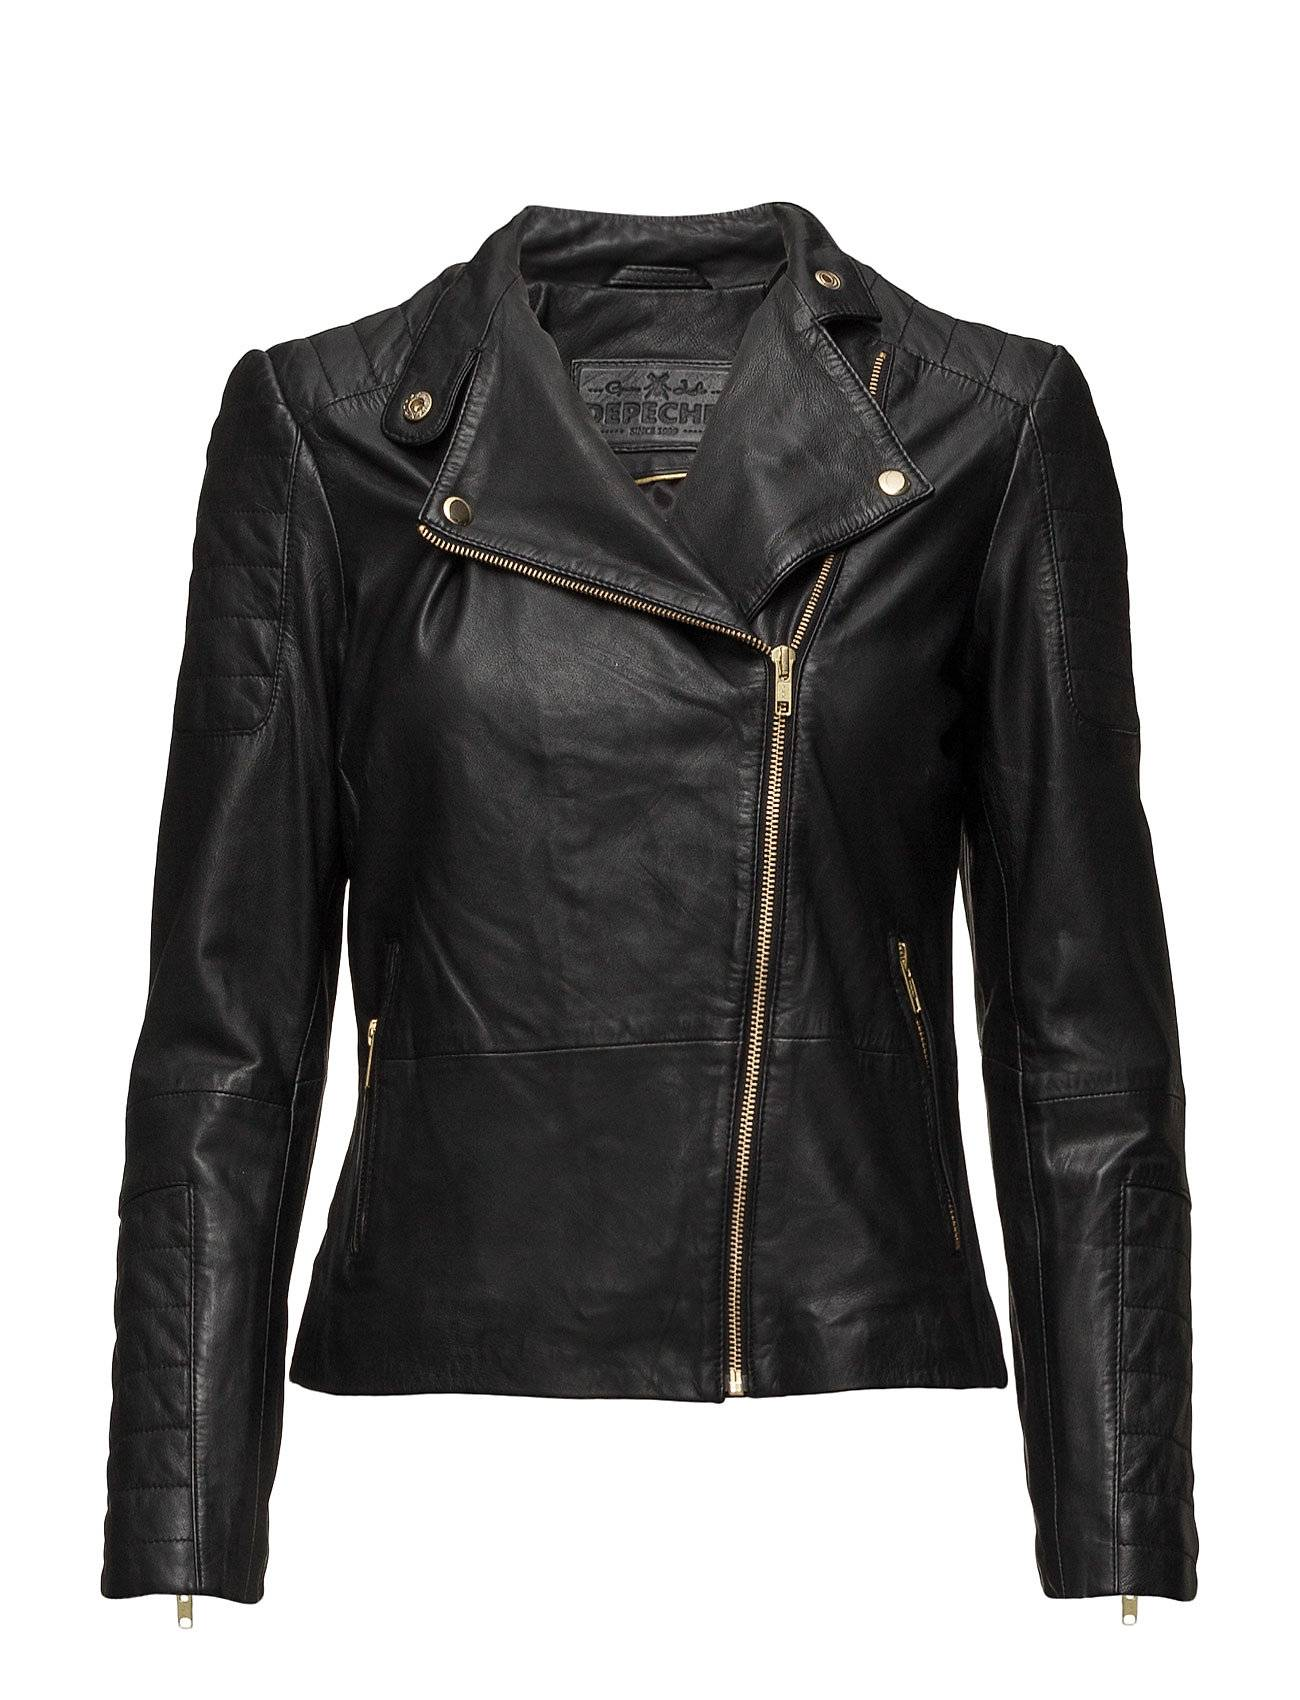 DEPECHE Classic Biker Jacket With Zipper Details